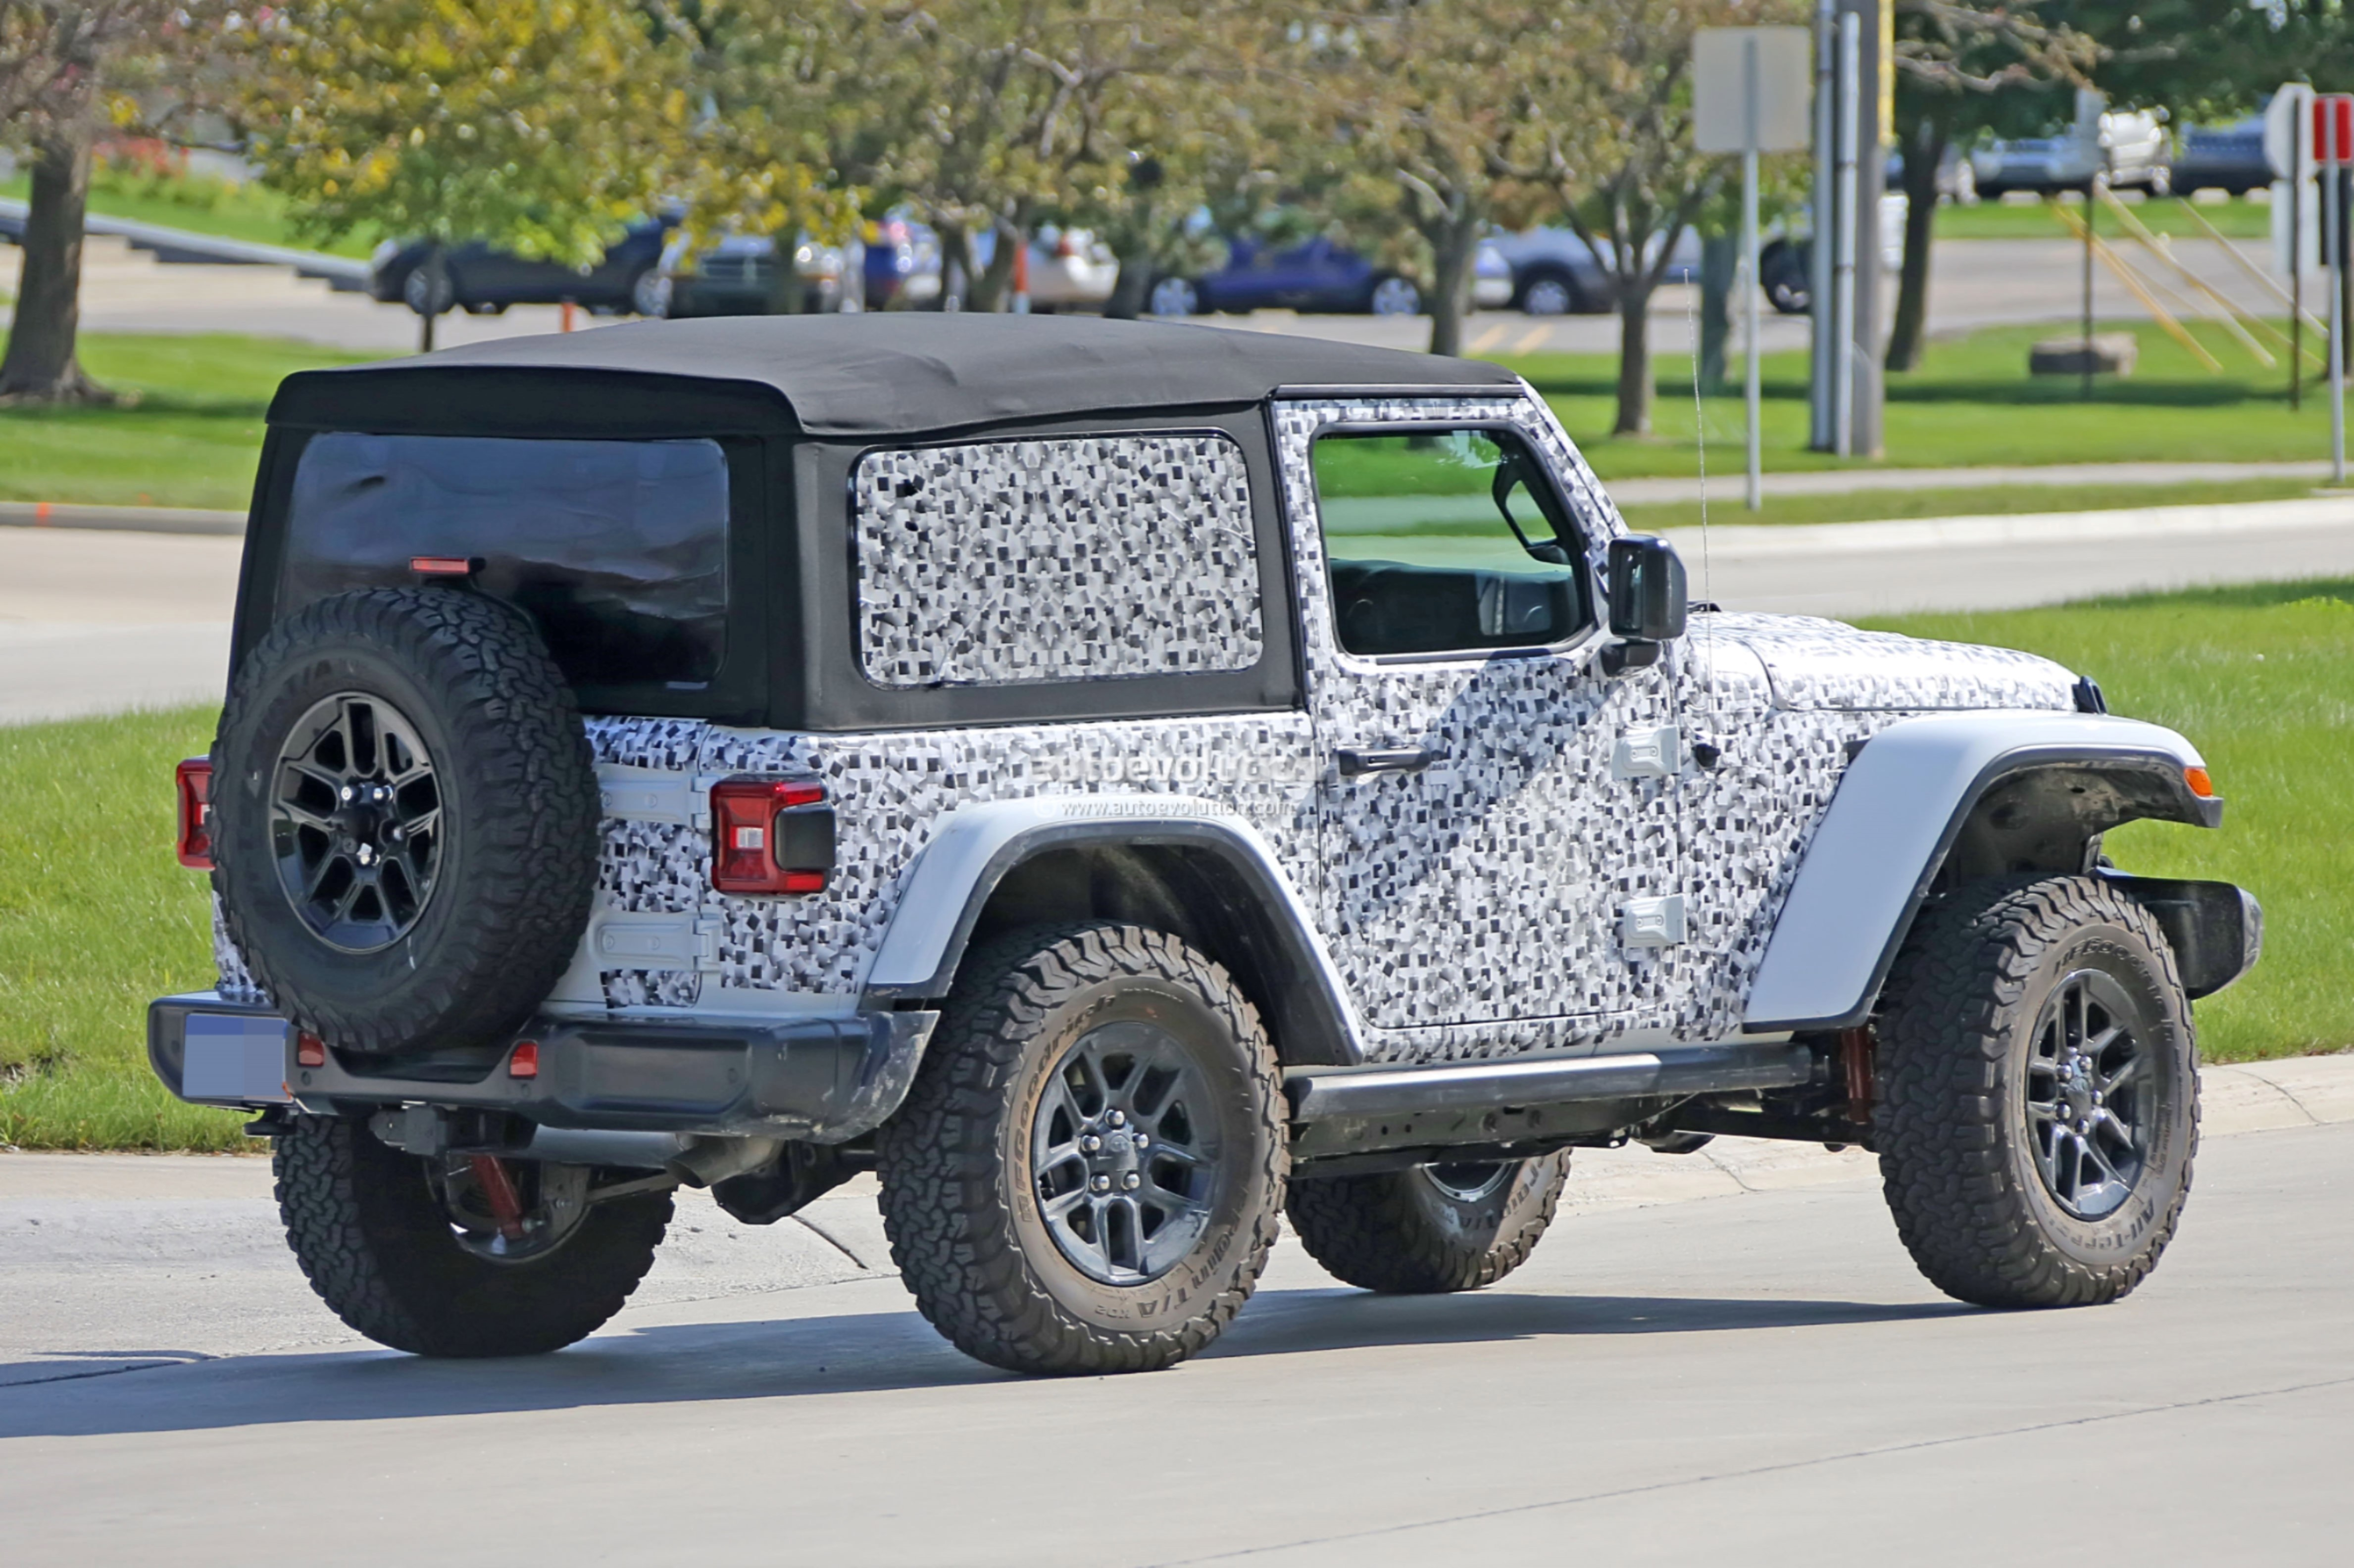 2018 - [Jeep] Wrangler - Page 3 2018-jeep-wrangler-jl-reveals-grille-and-headlights-in-newest-spy-photos_9